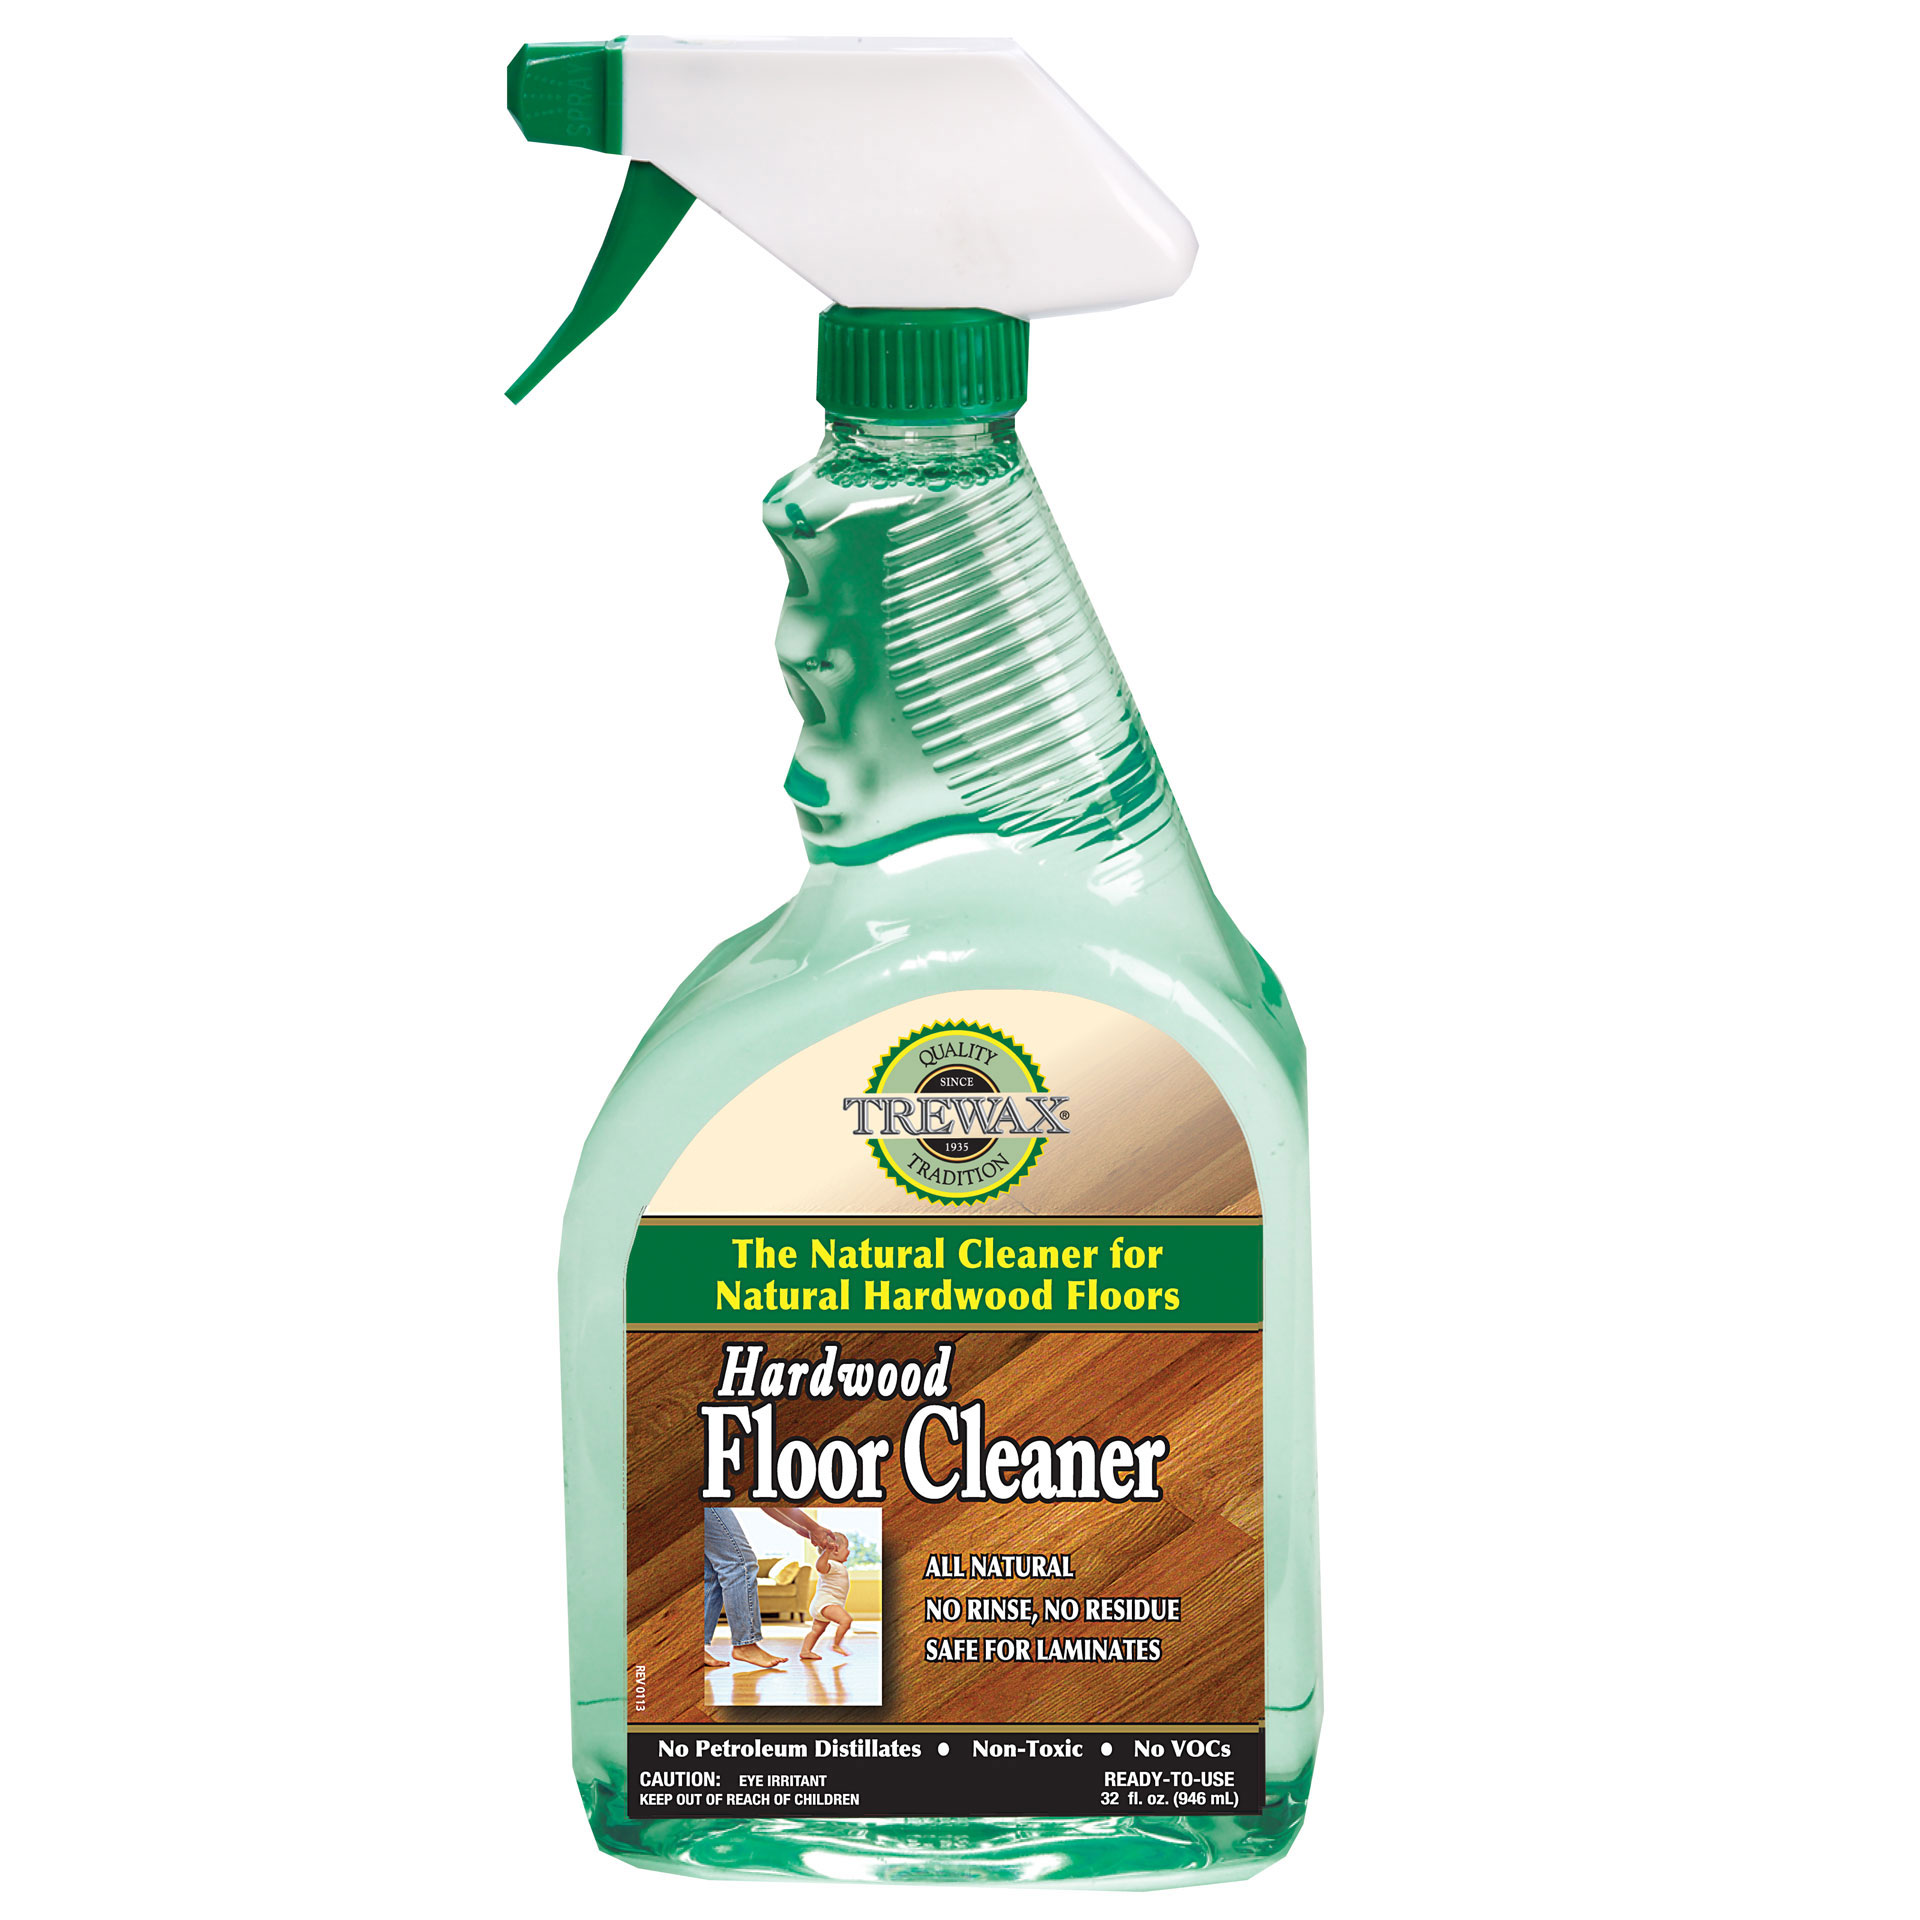 Trewax hardwood floor cleaner review for Floor cleaning